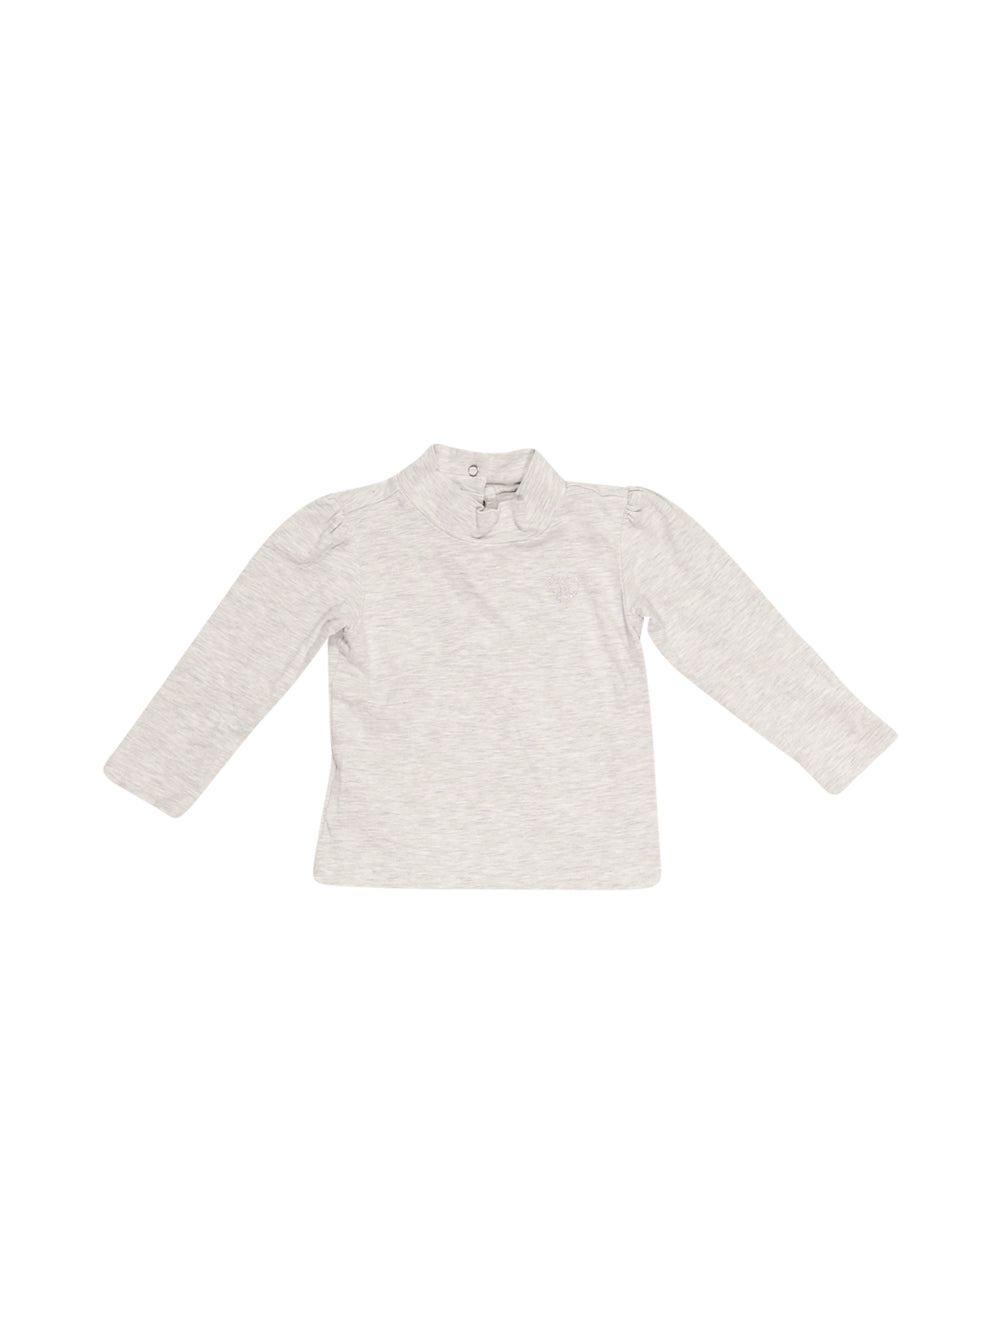 Front photo of Preloved Chicco Grey Girl's long sleeved shirt - size 12-18 mths